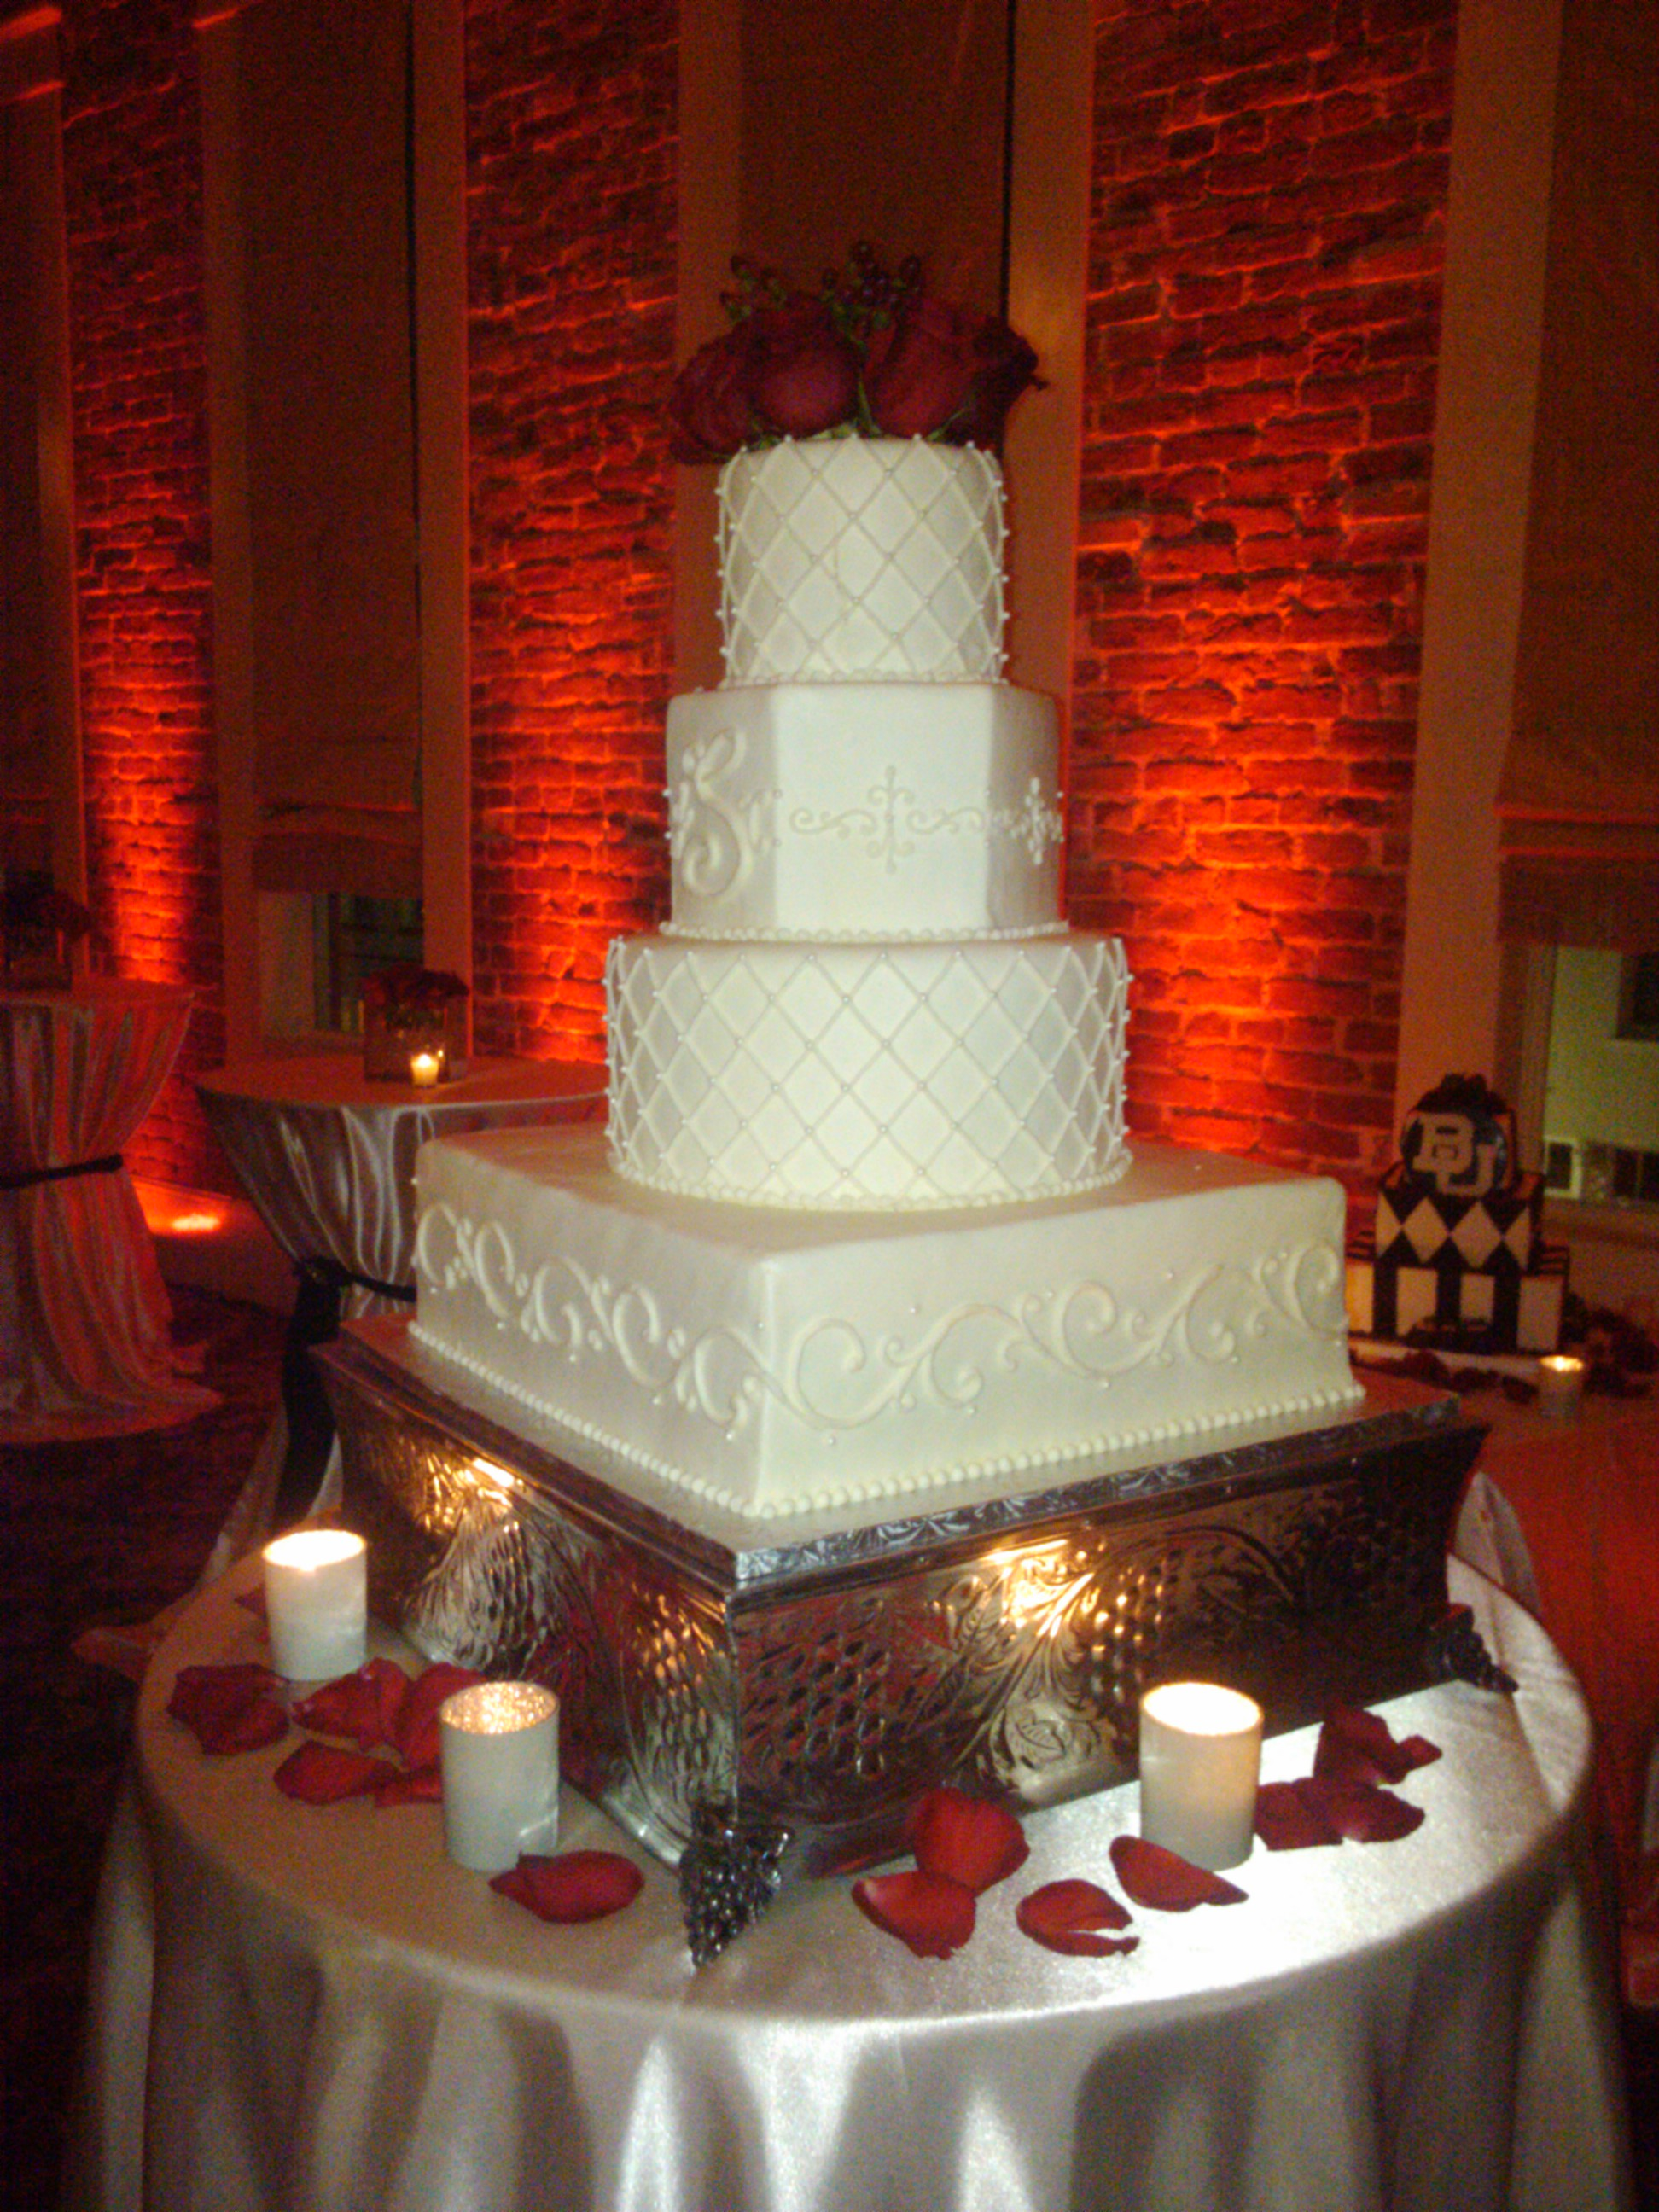 Terrell-Josh (cake with uplighting)